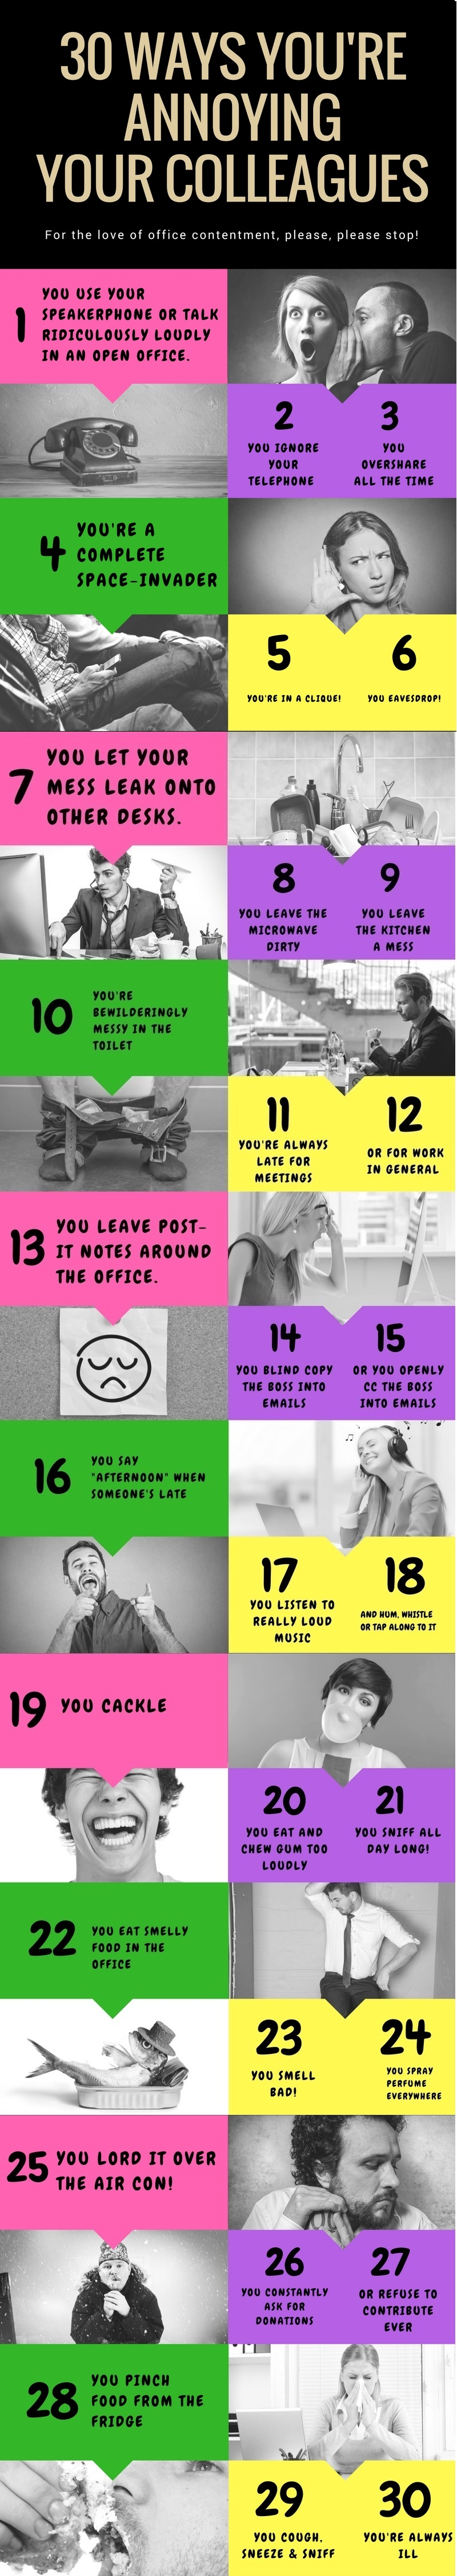 30 Ways You're Annoying Your Colleagues